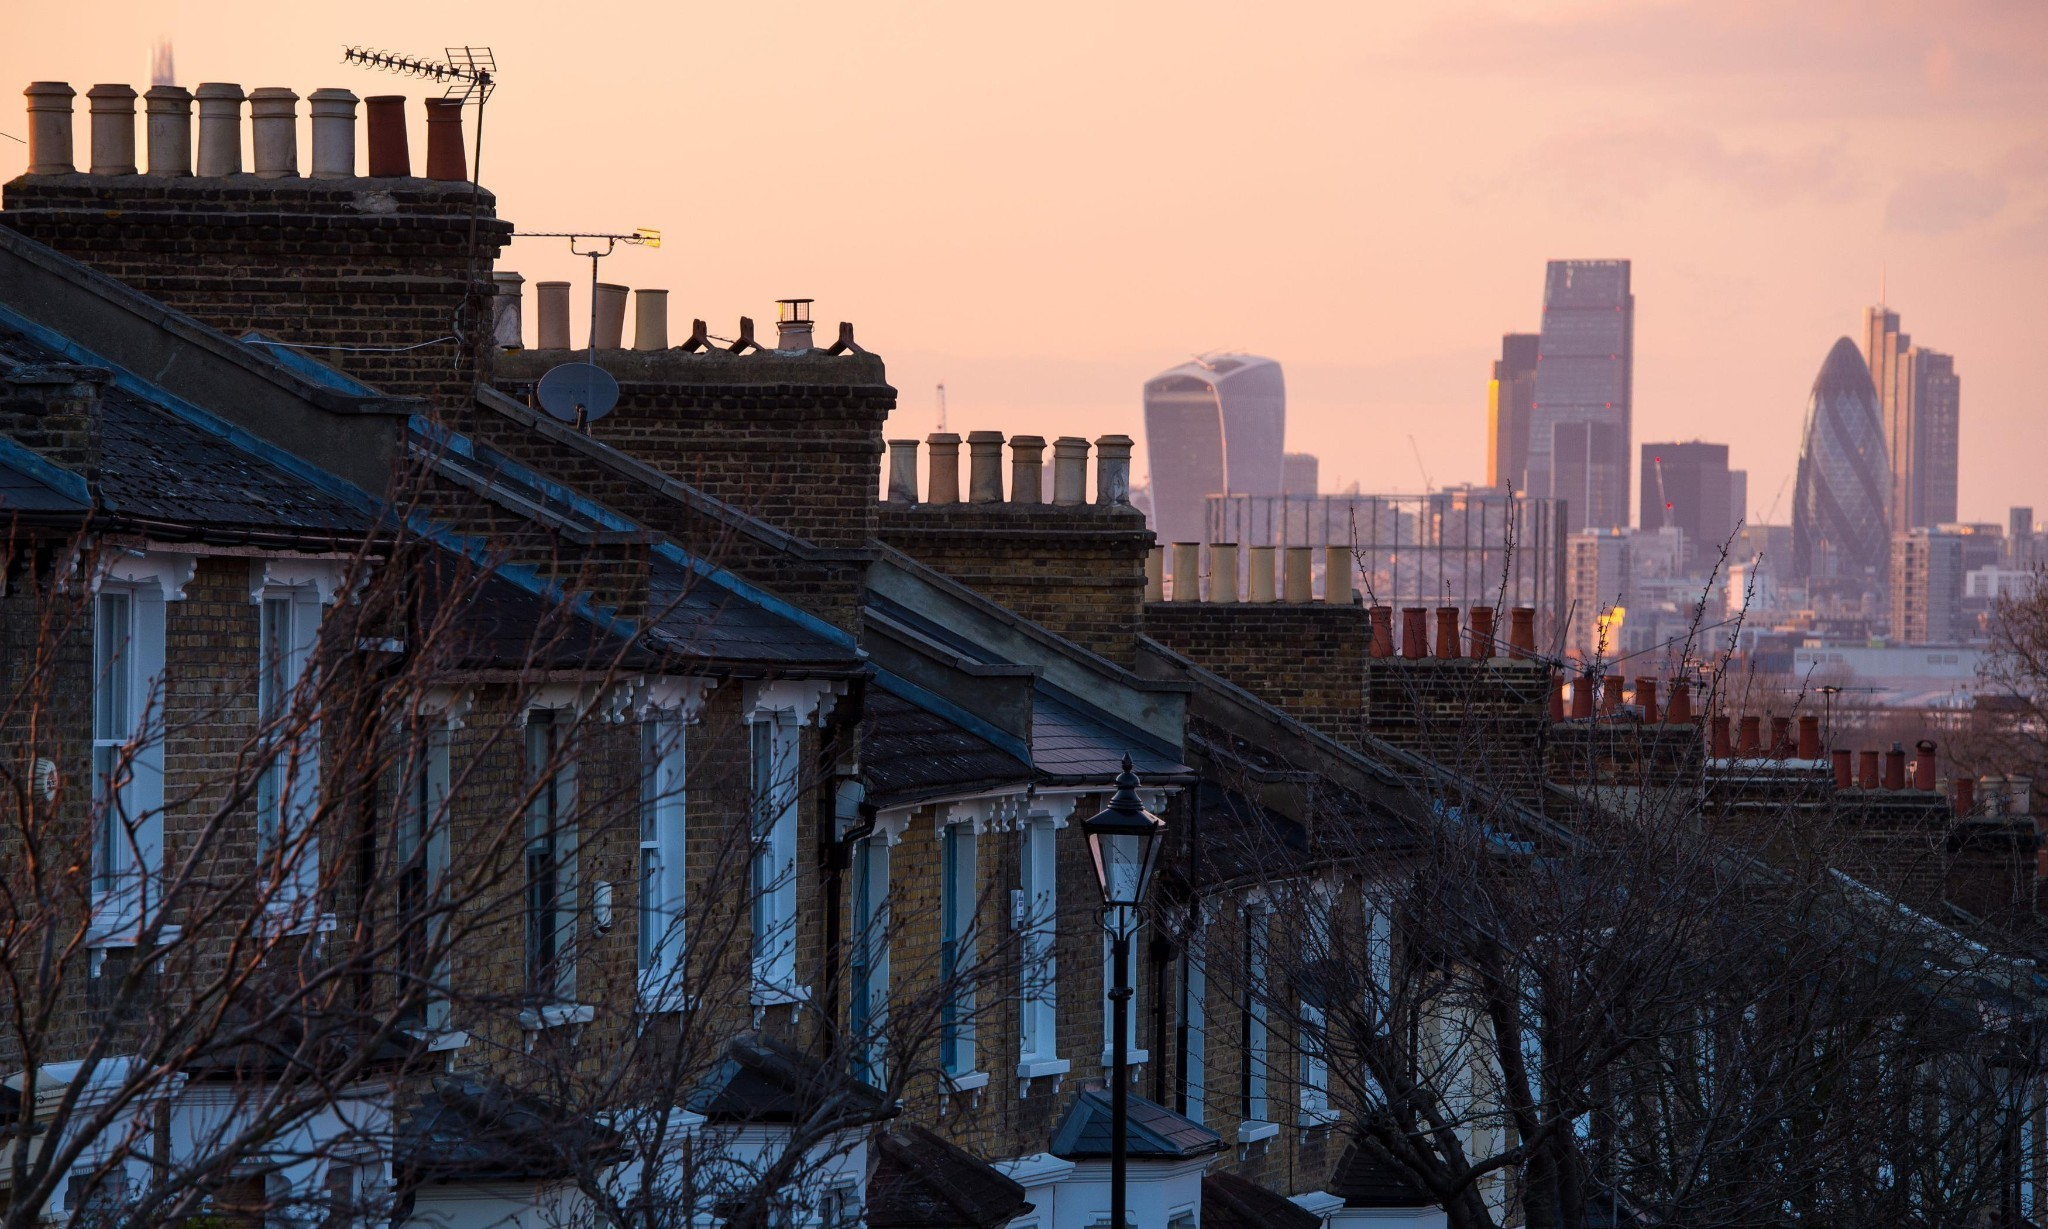 More than half of Londoners in poverty are in working families